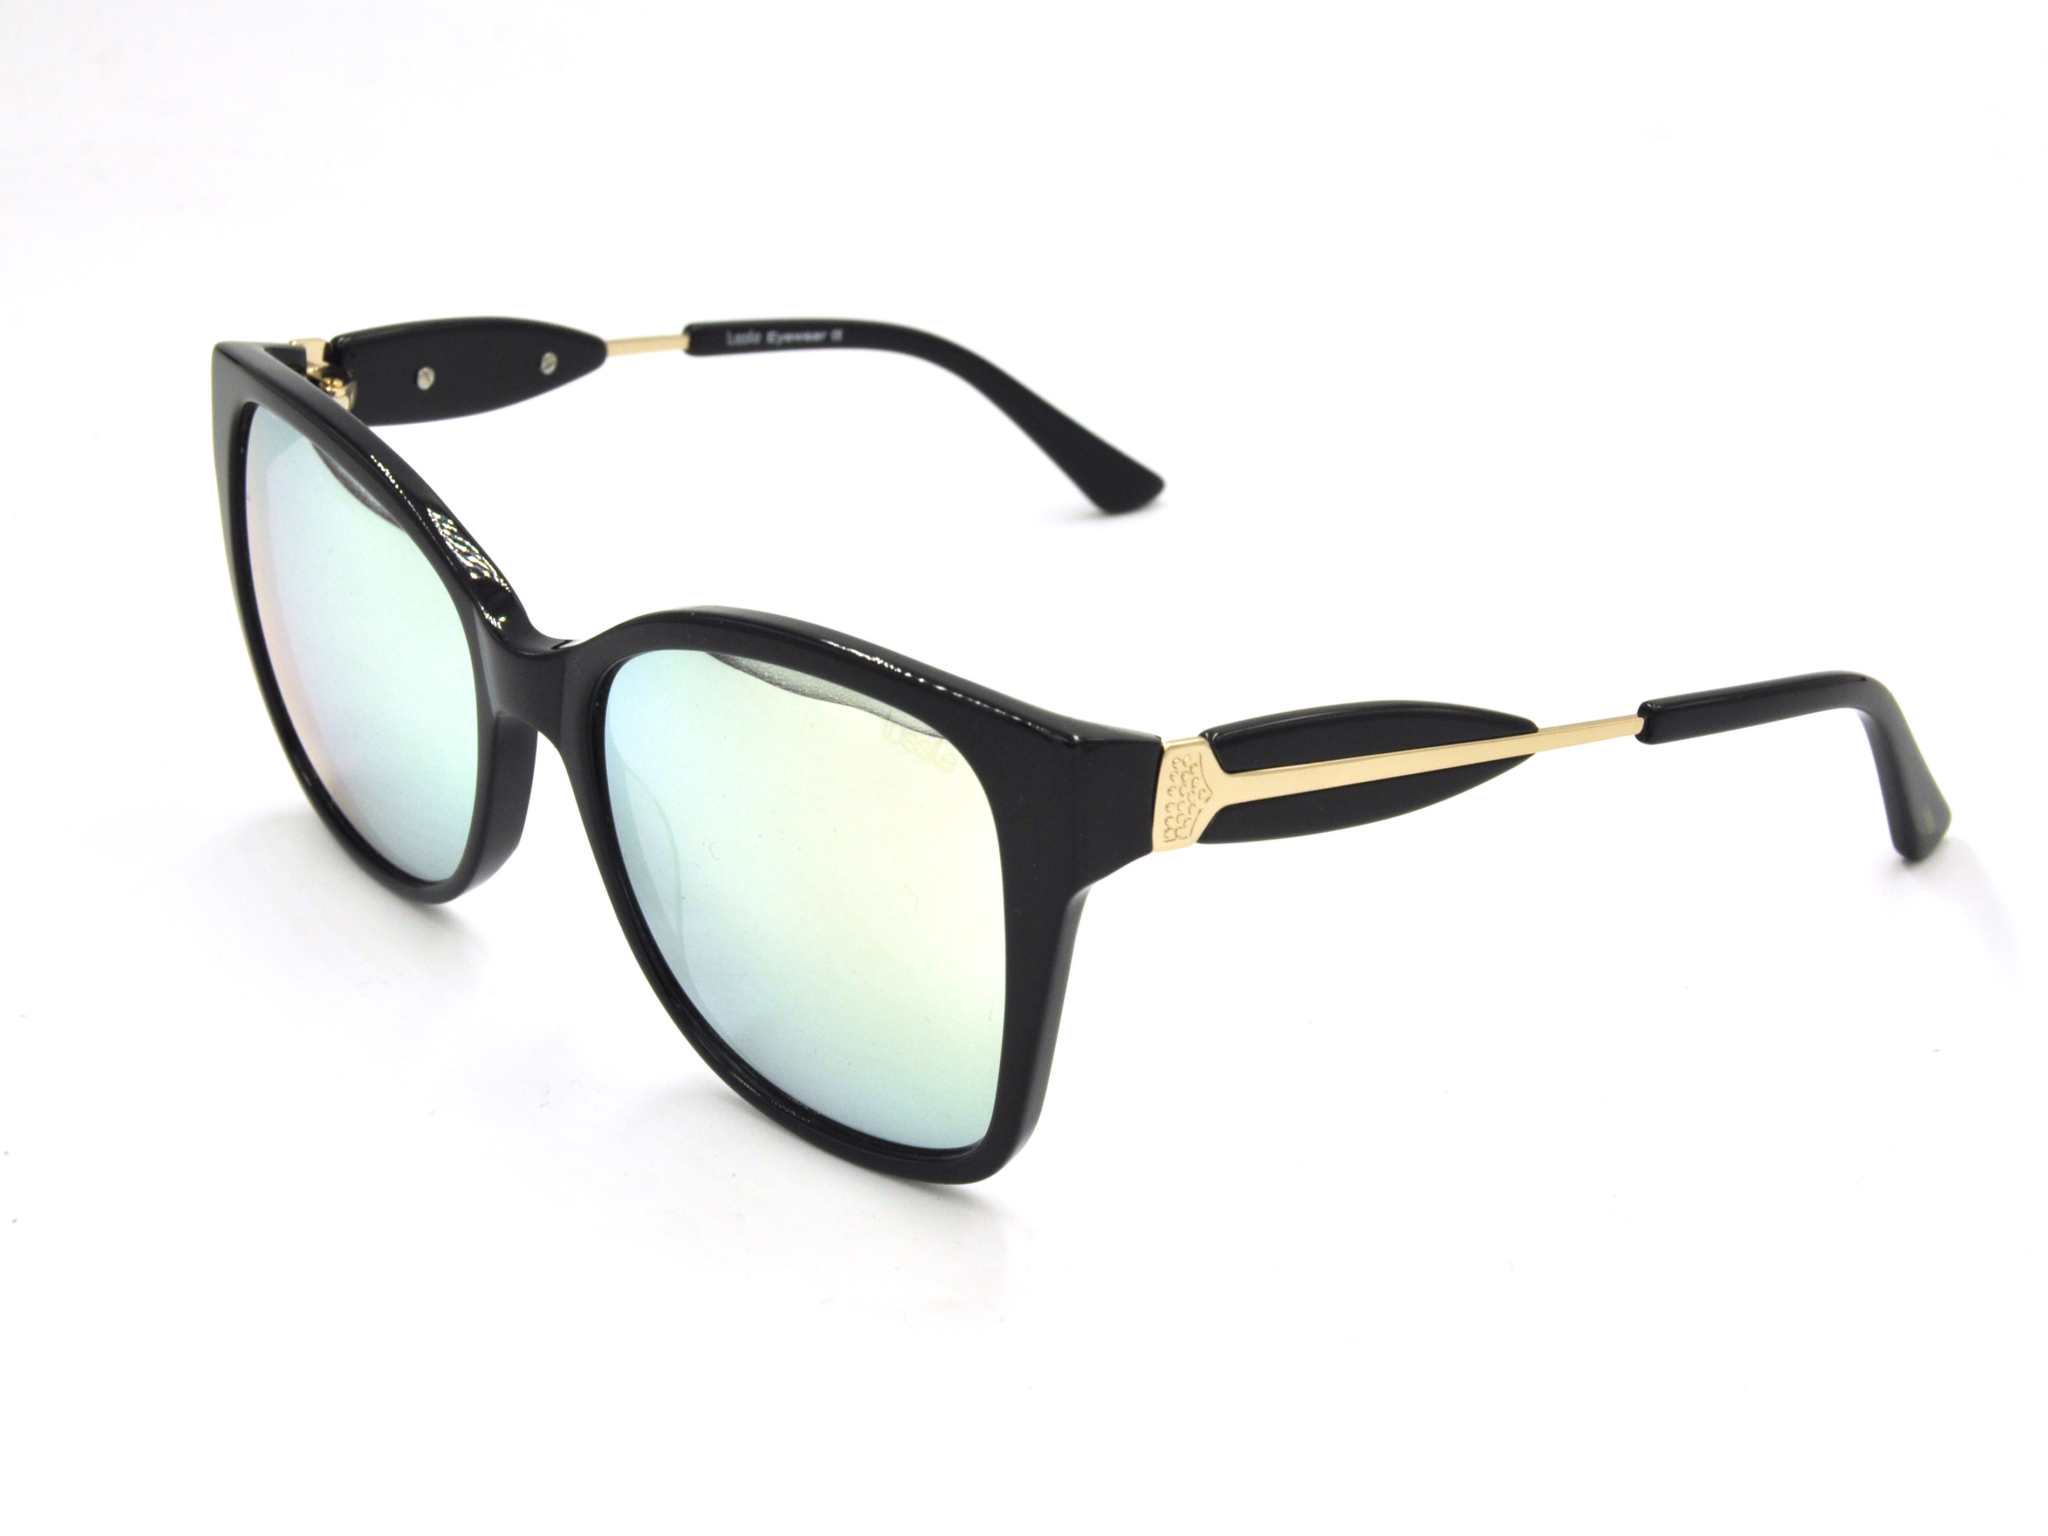 LUSSILE LS31265 LM02 Sunglasses 2020